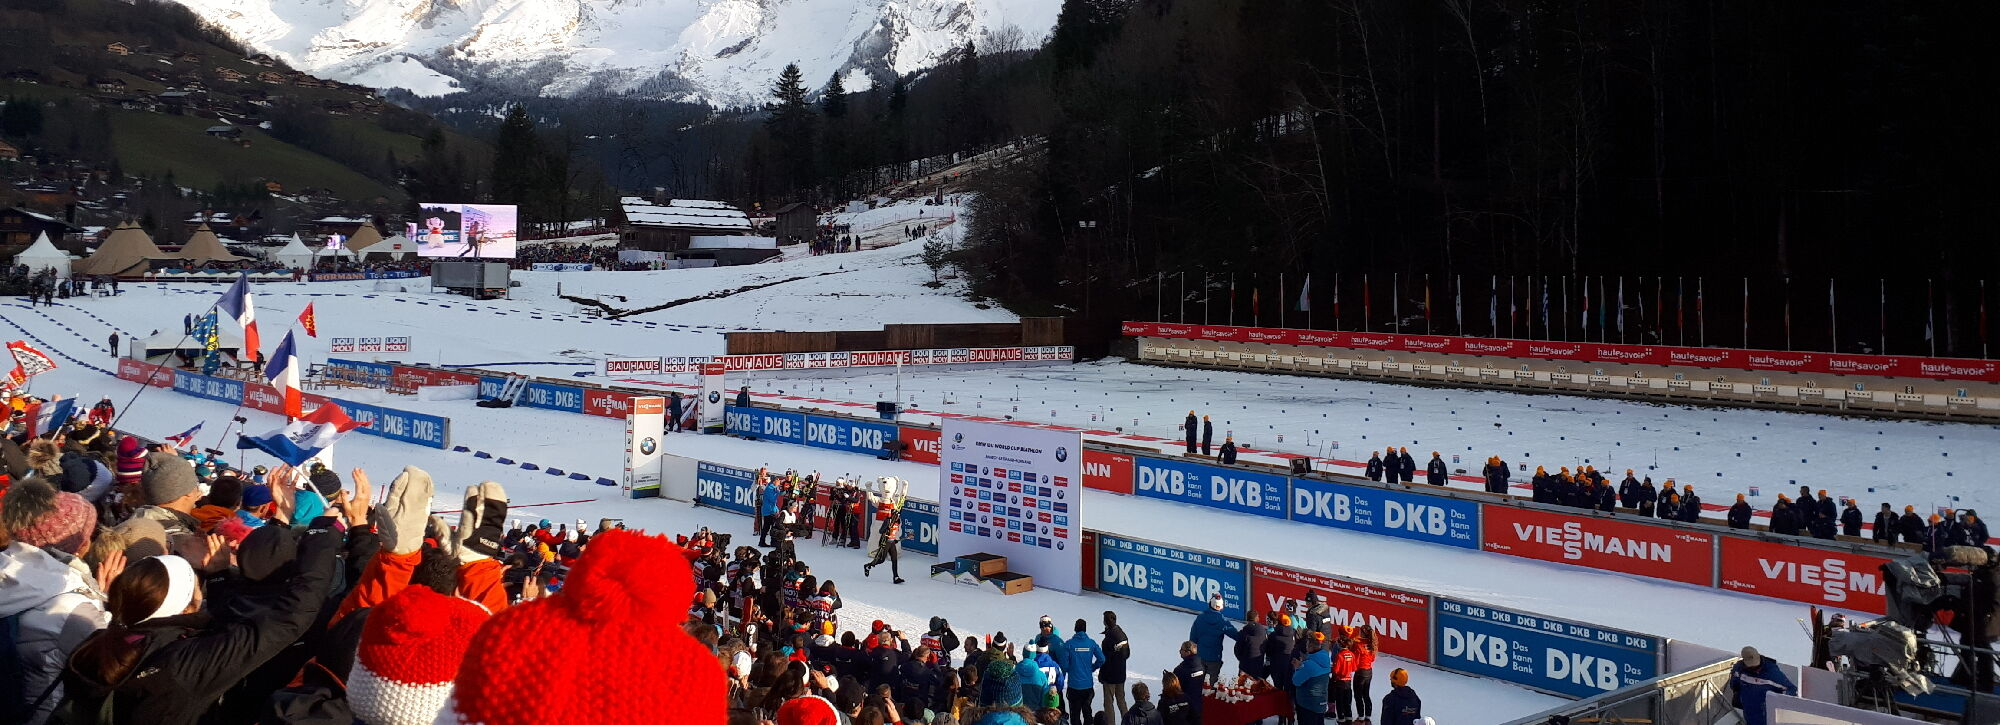 Biathlon World Cup 2019 Le Grand Bornand